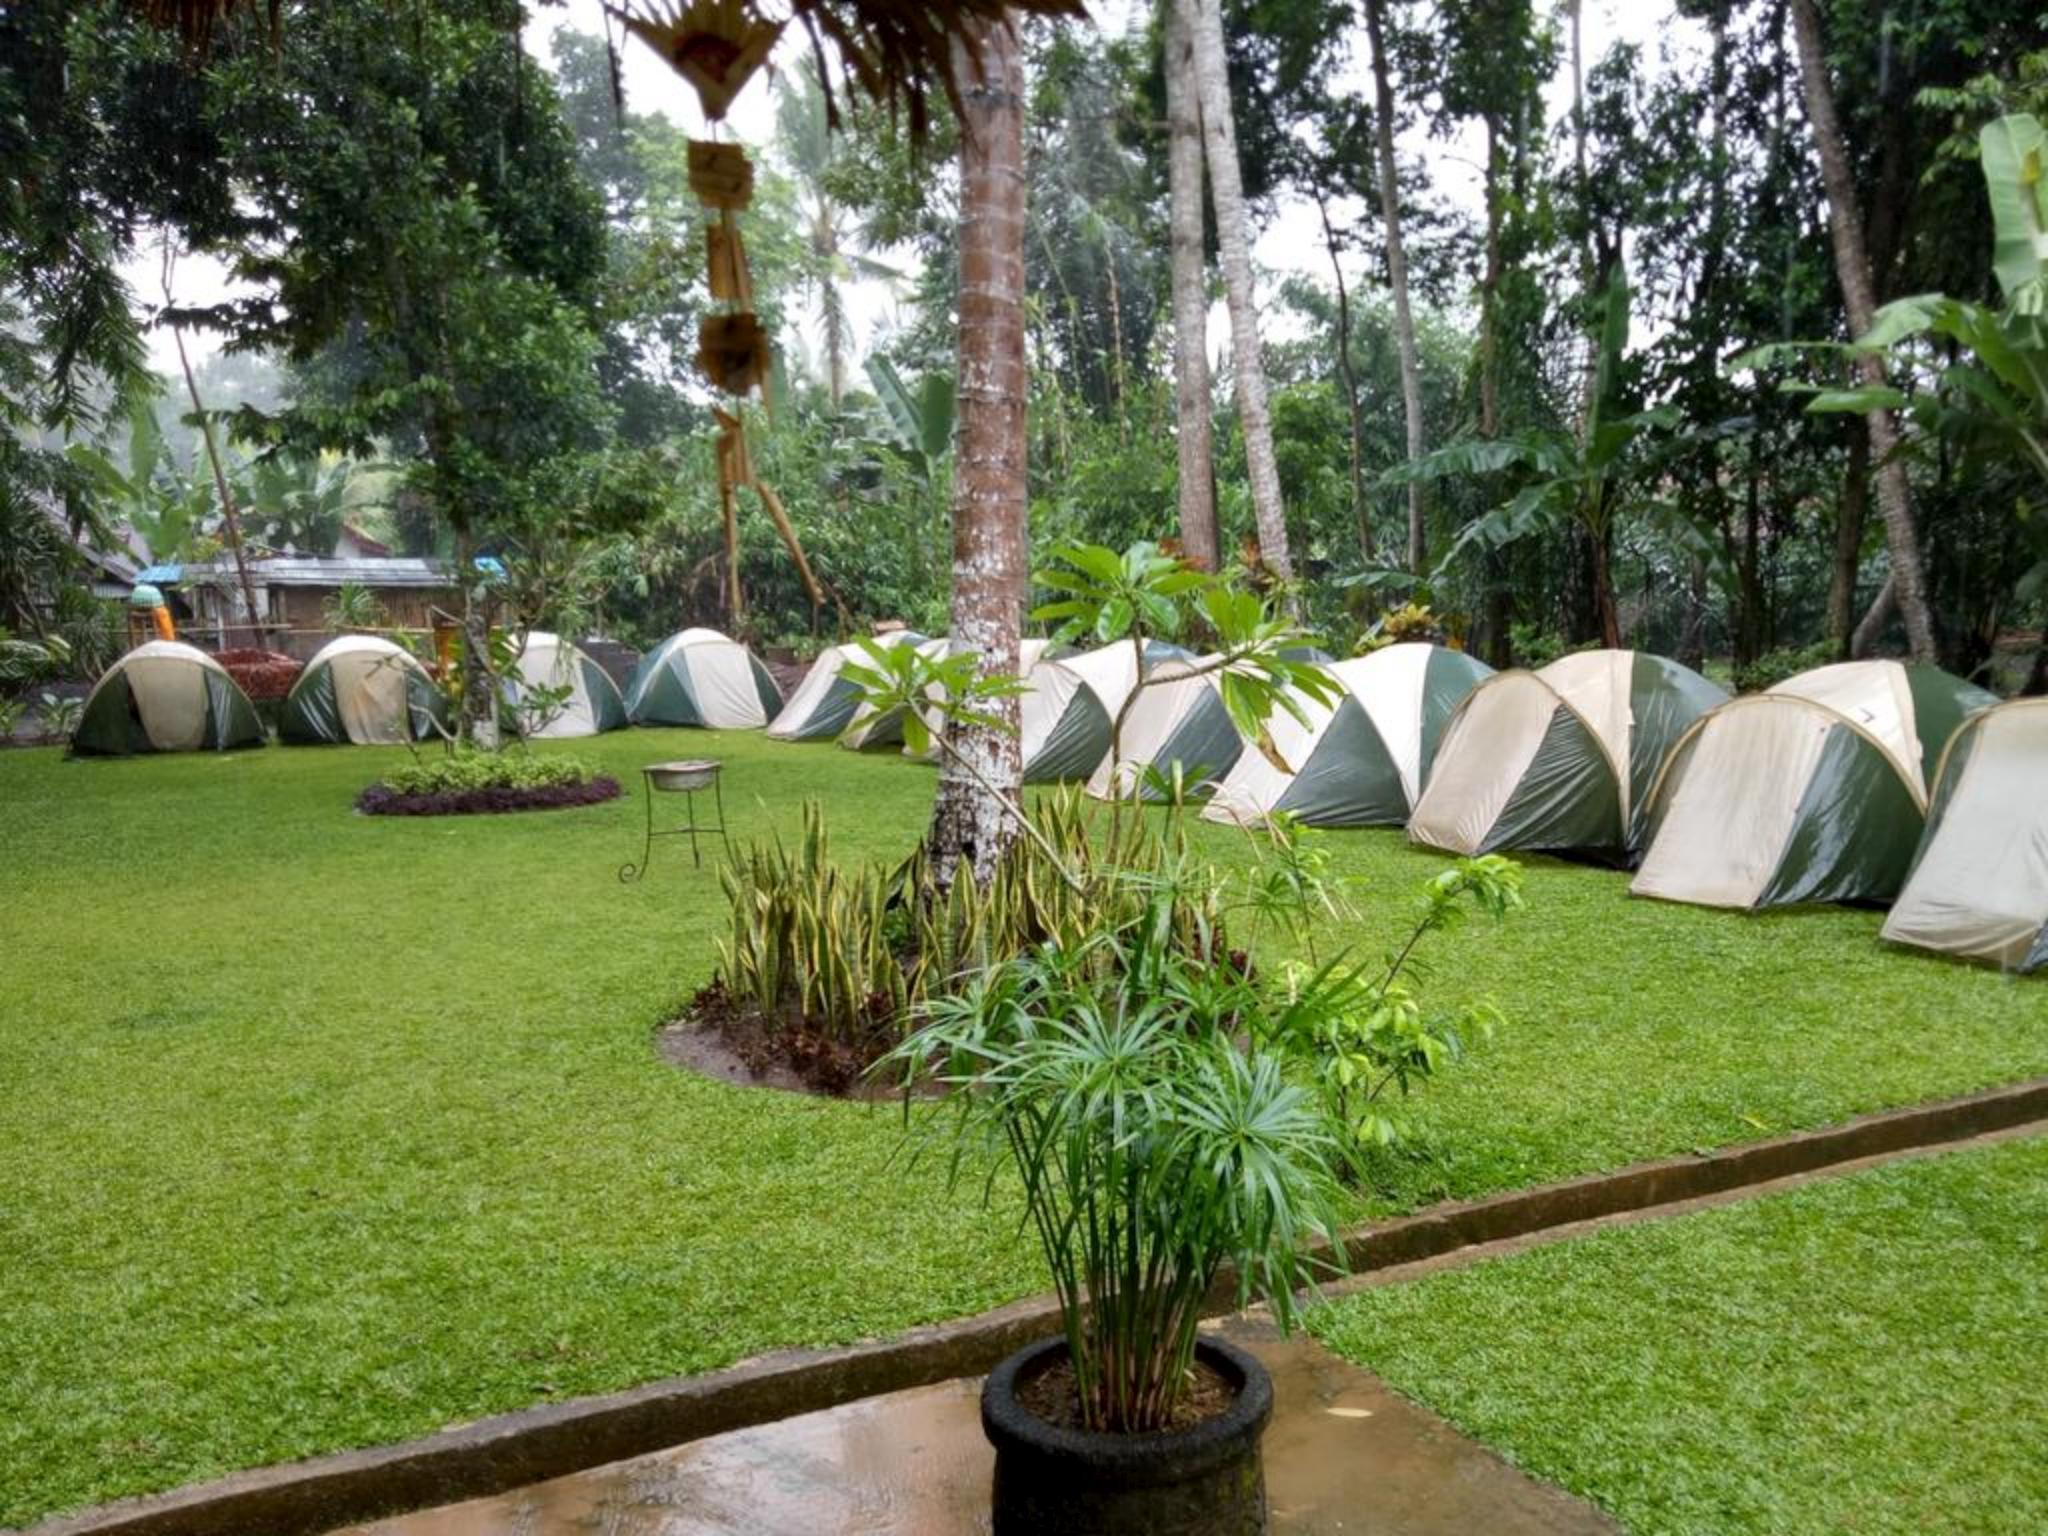 Hotels Review: Bali Camping Ubud Camp – Photos, Prices and Deals